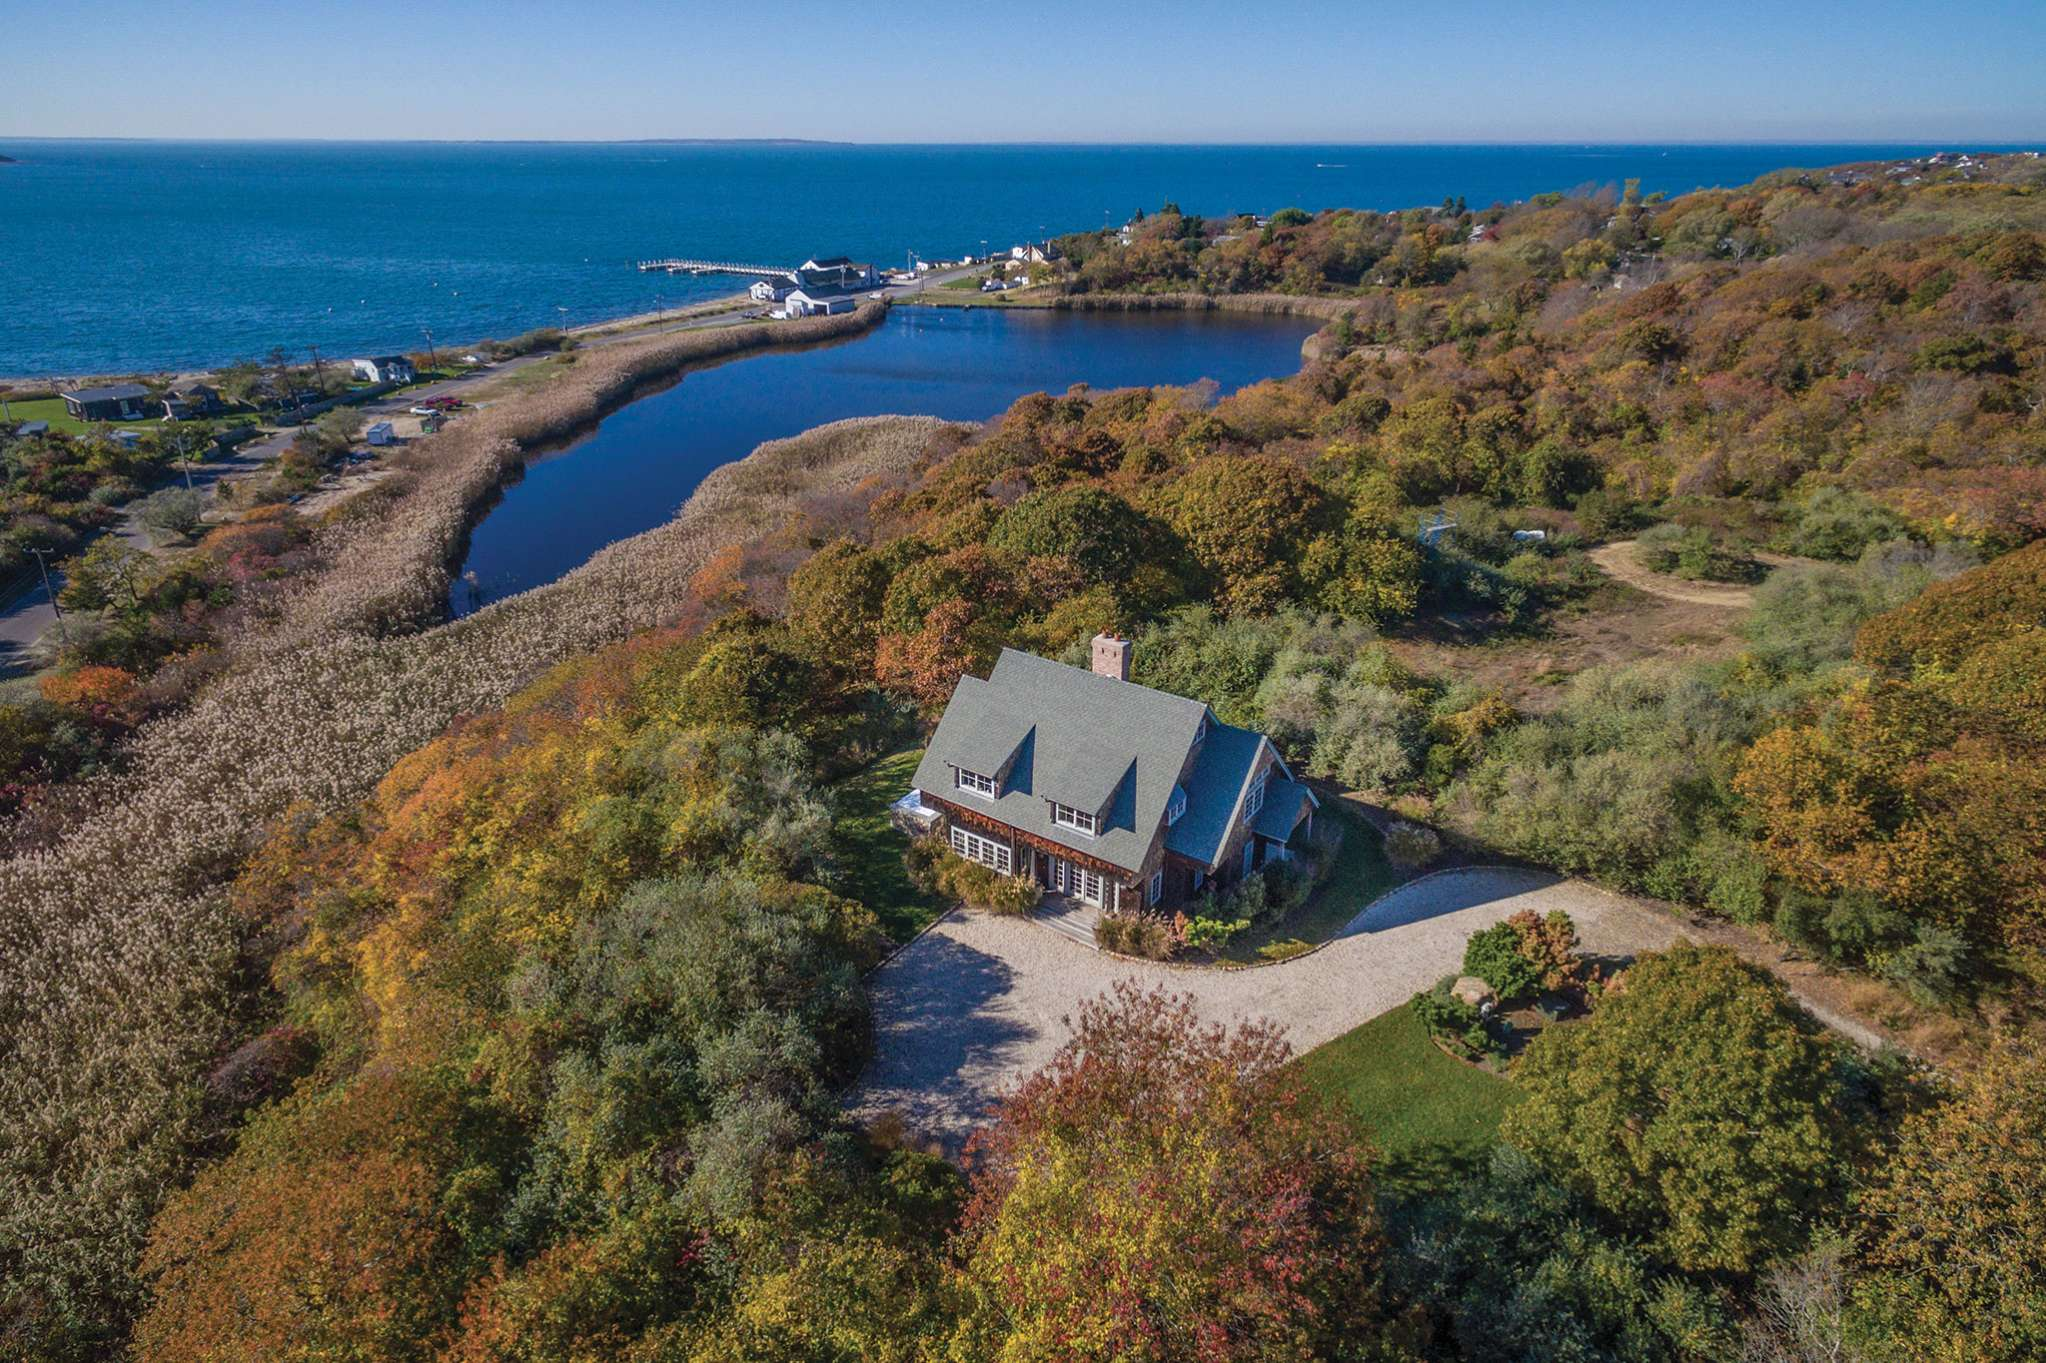 Single Family Home for Sale at Elegant And Private With Stunning Sunsets And Water Views 15 Edgemere Street, Montauk, New York